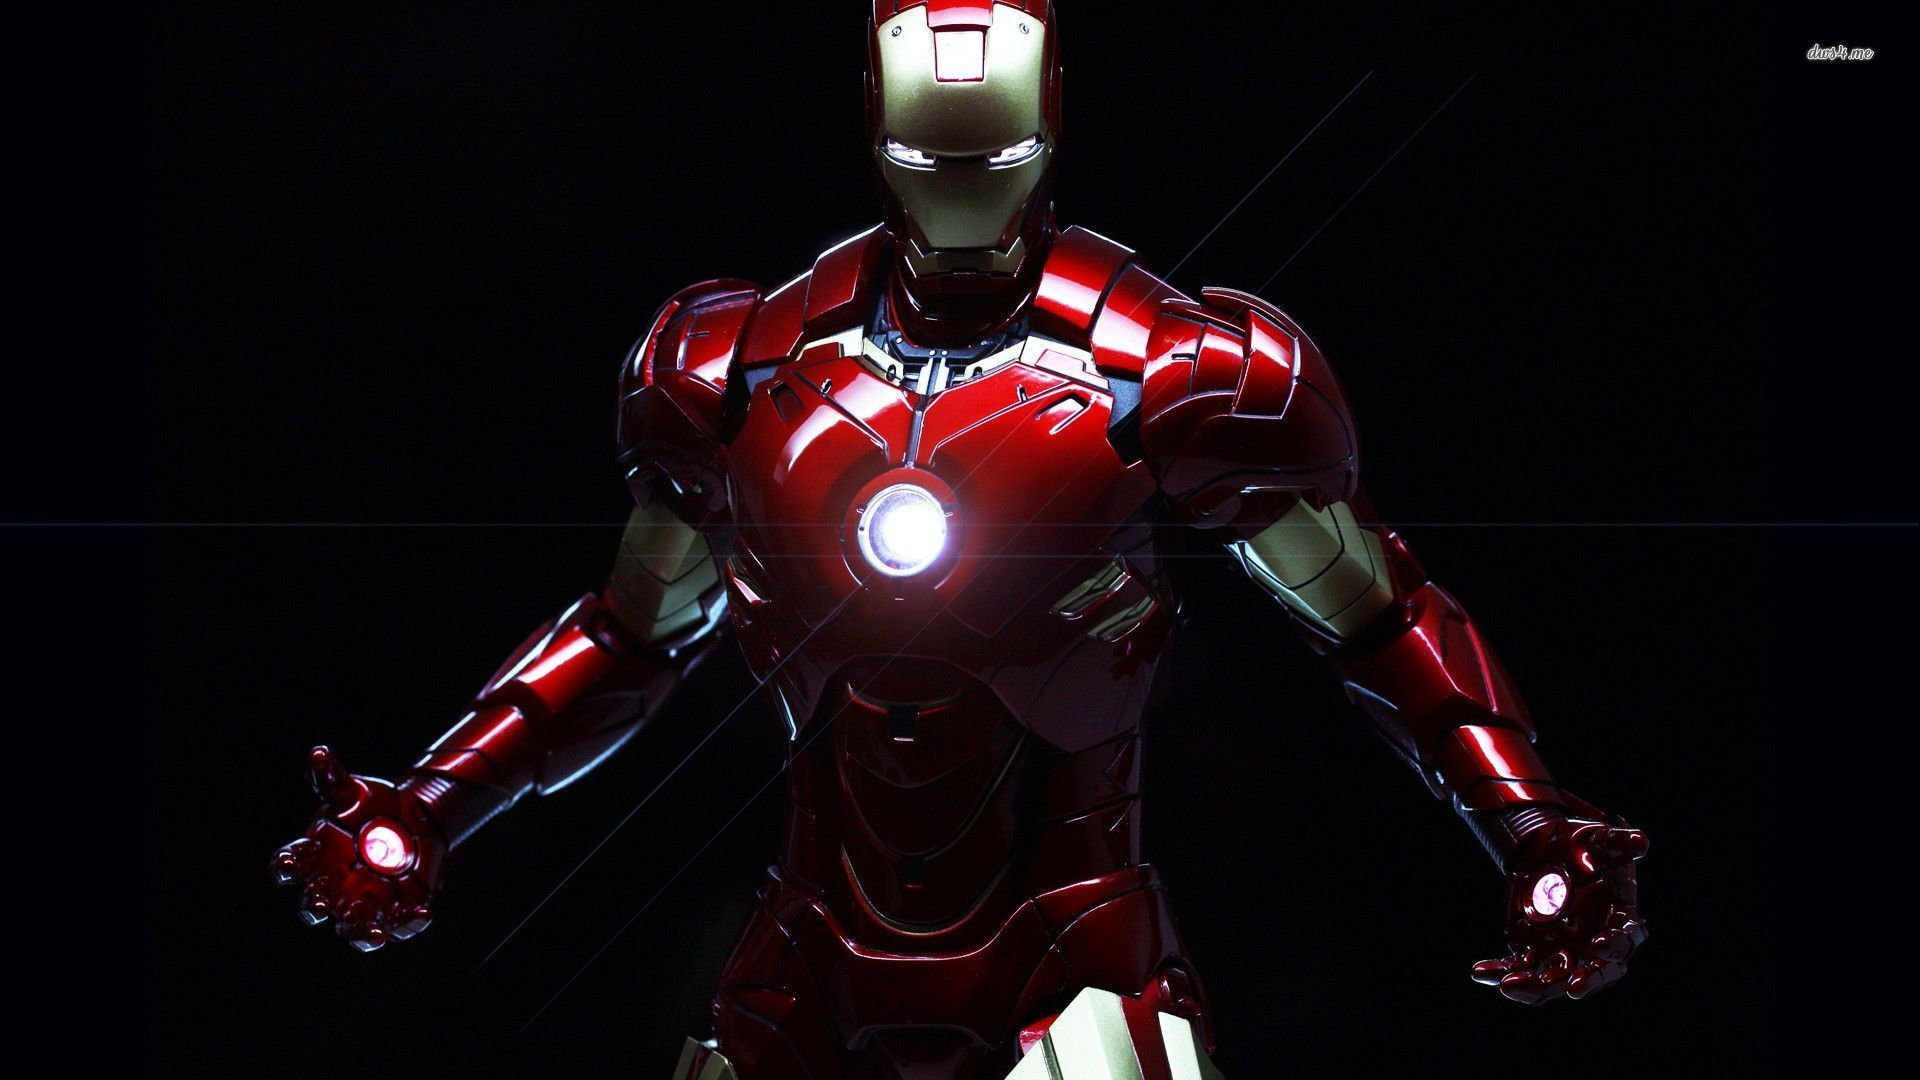 ironman hd wallpapers for oneplus tures | hd wallpapers | pinterest